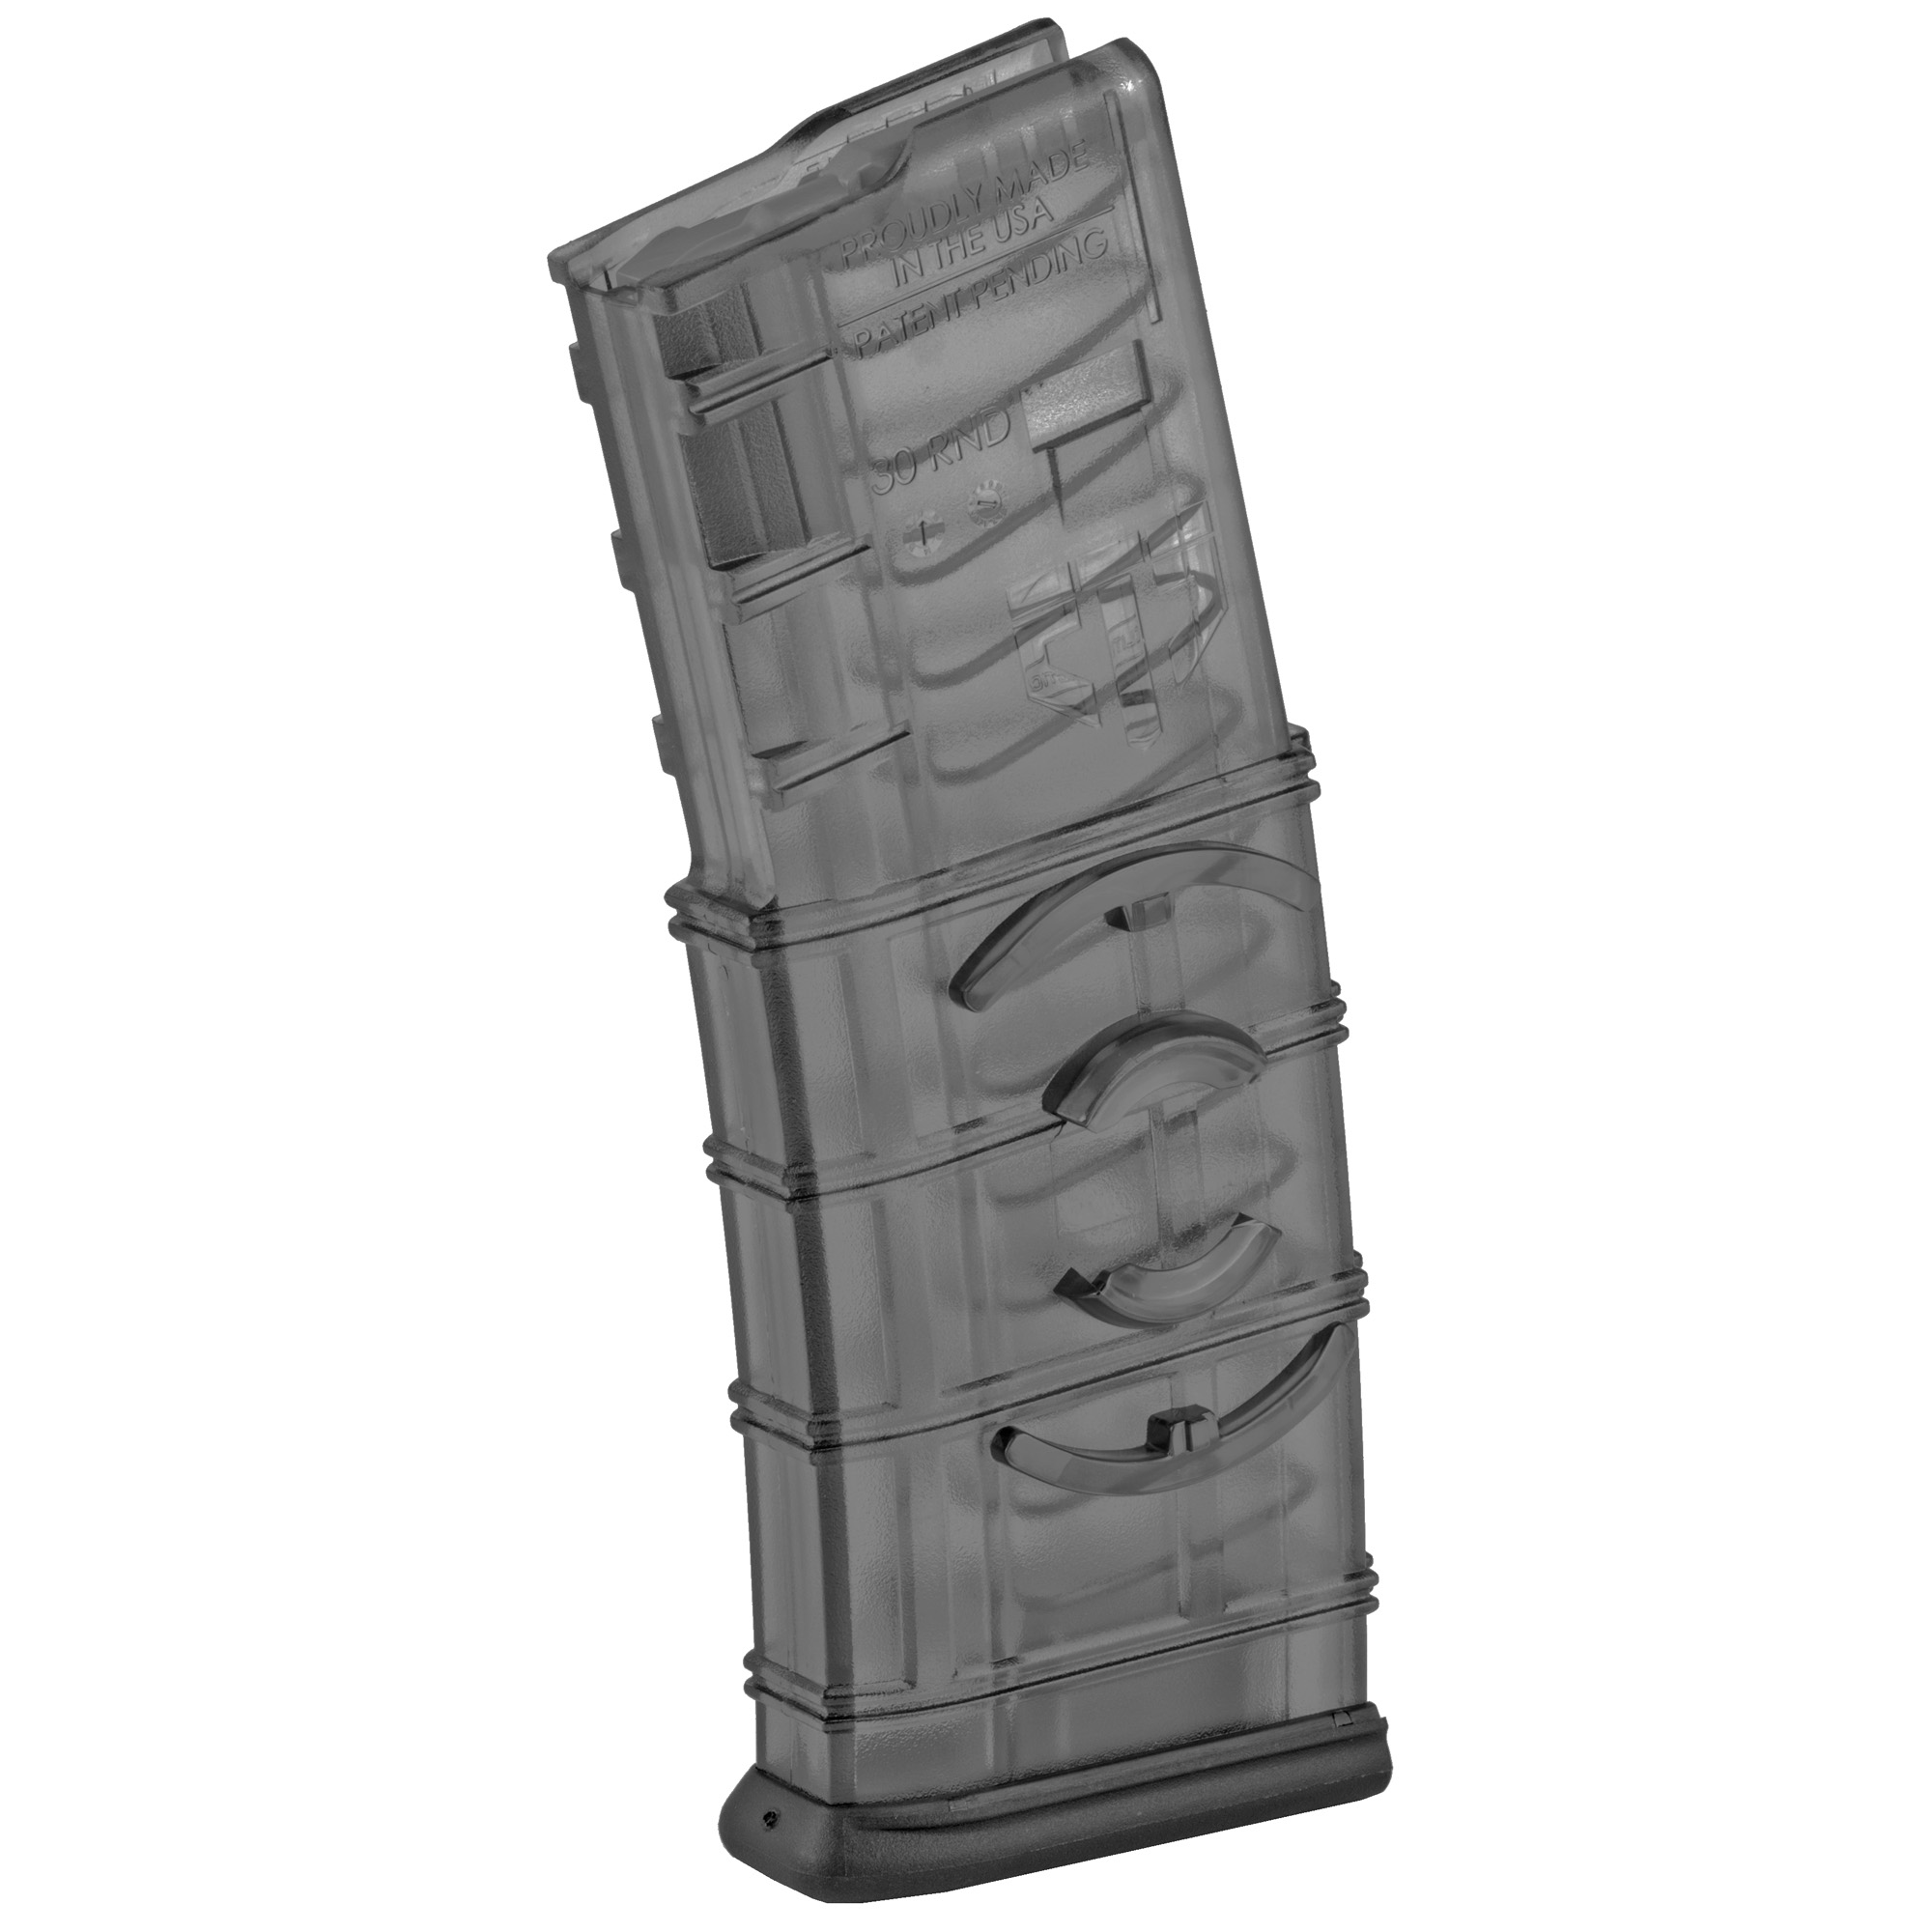 Ets Mag Ar556 30rd Coupled Smoke